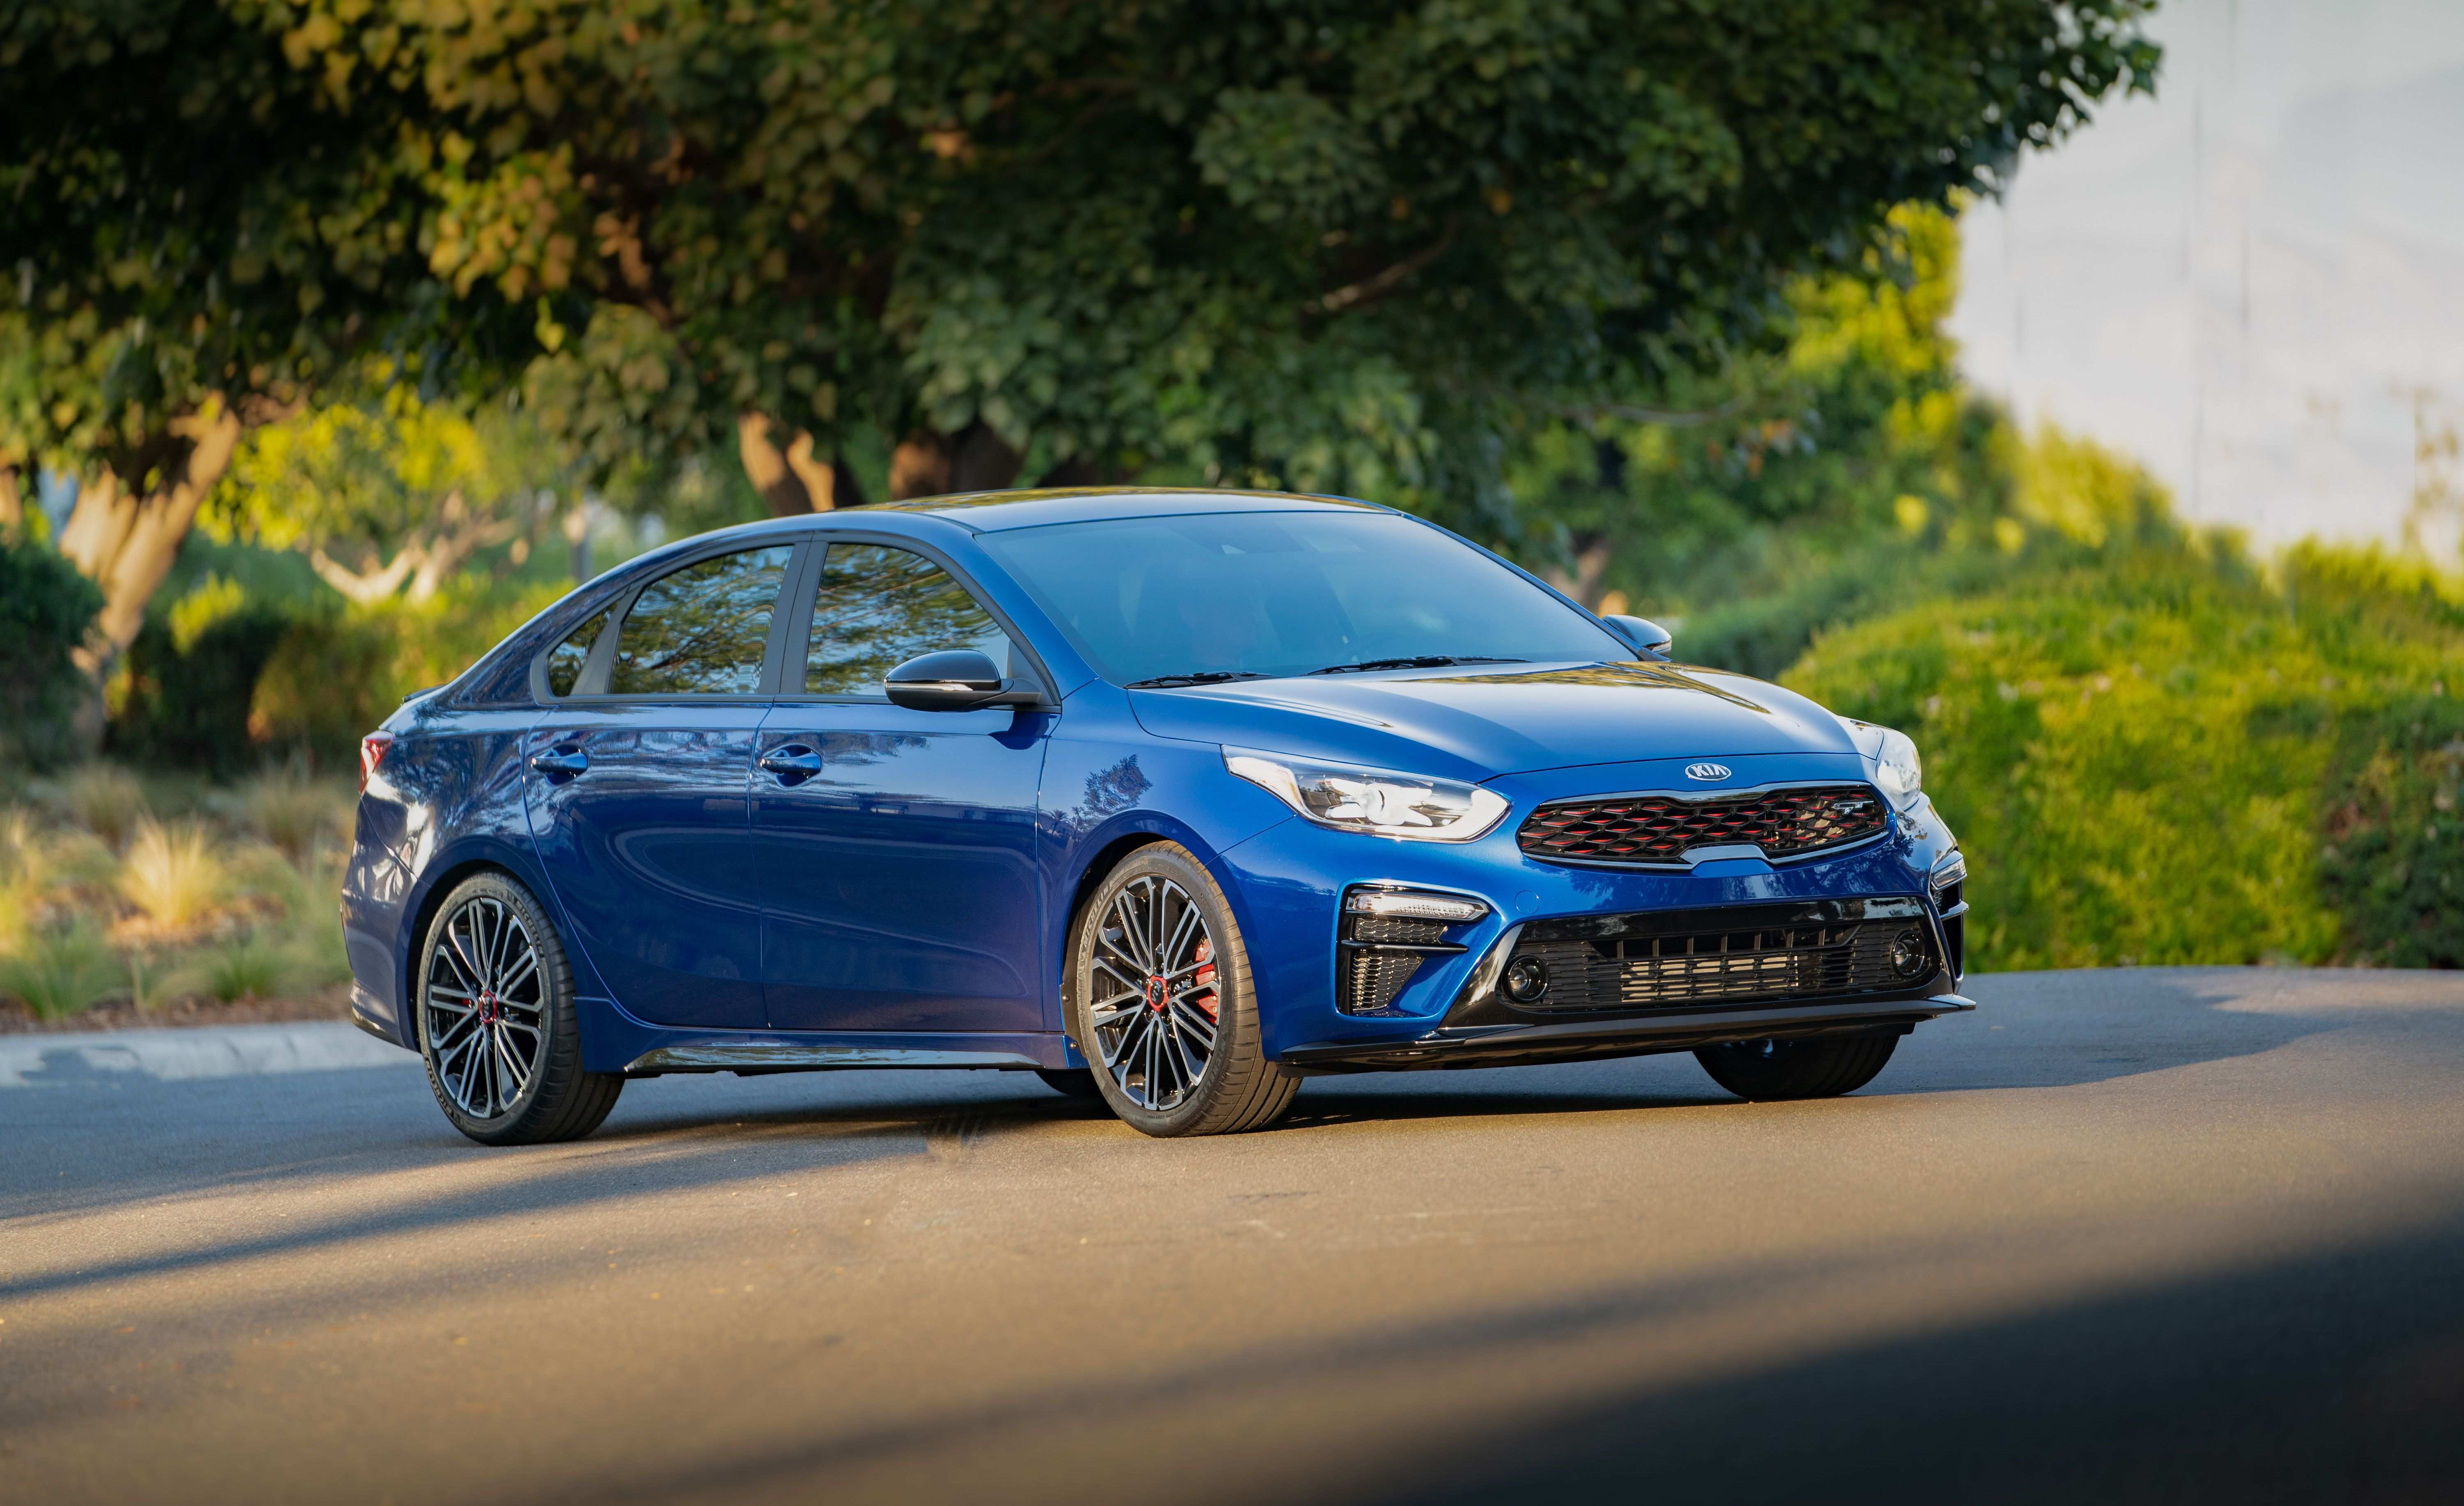 54 Best Review Kia Forte Hatchback 2020 Review with Kia Forte Hatchback 2020